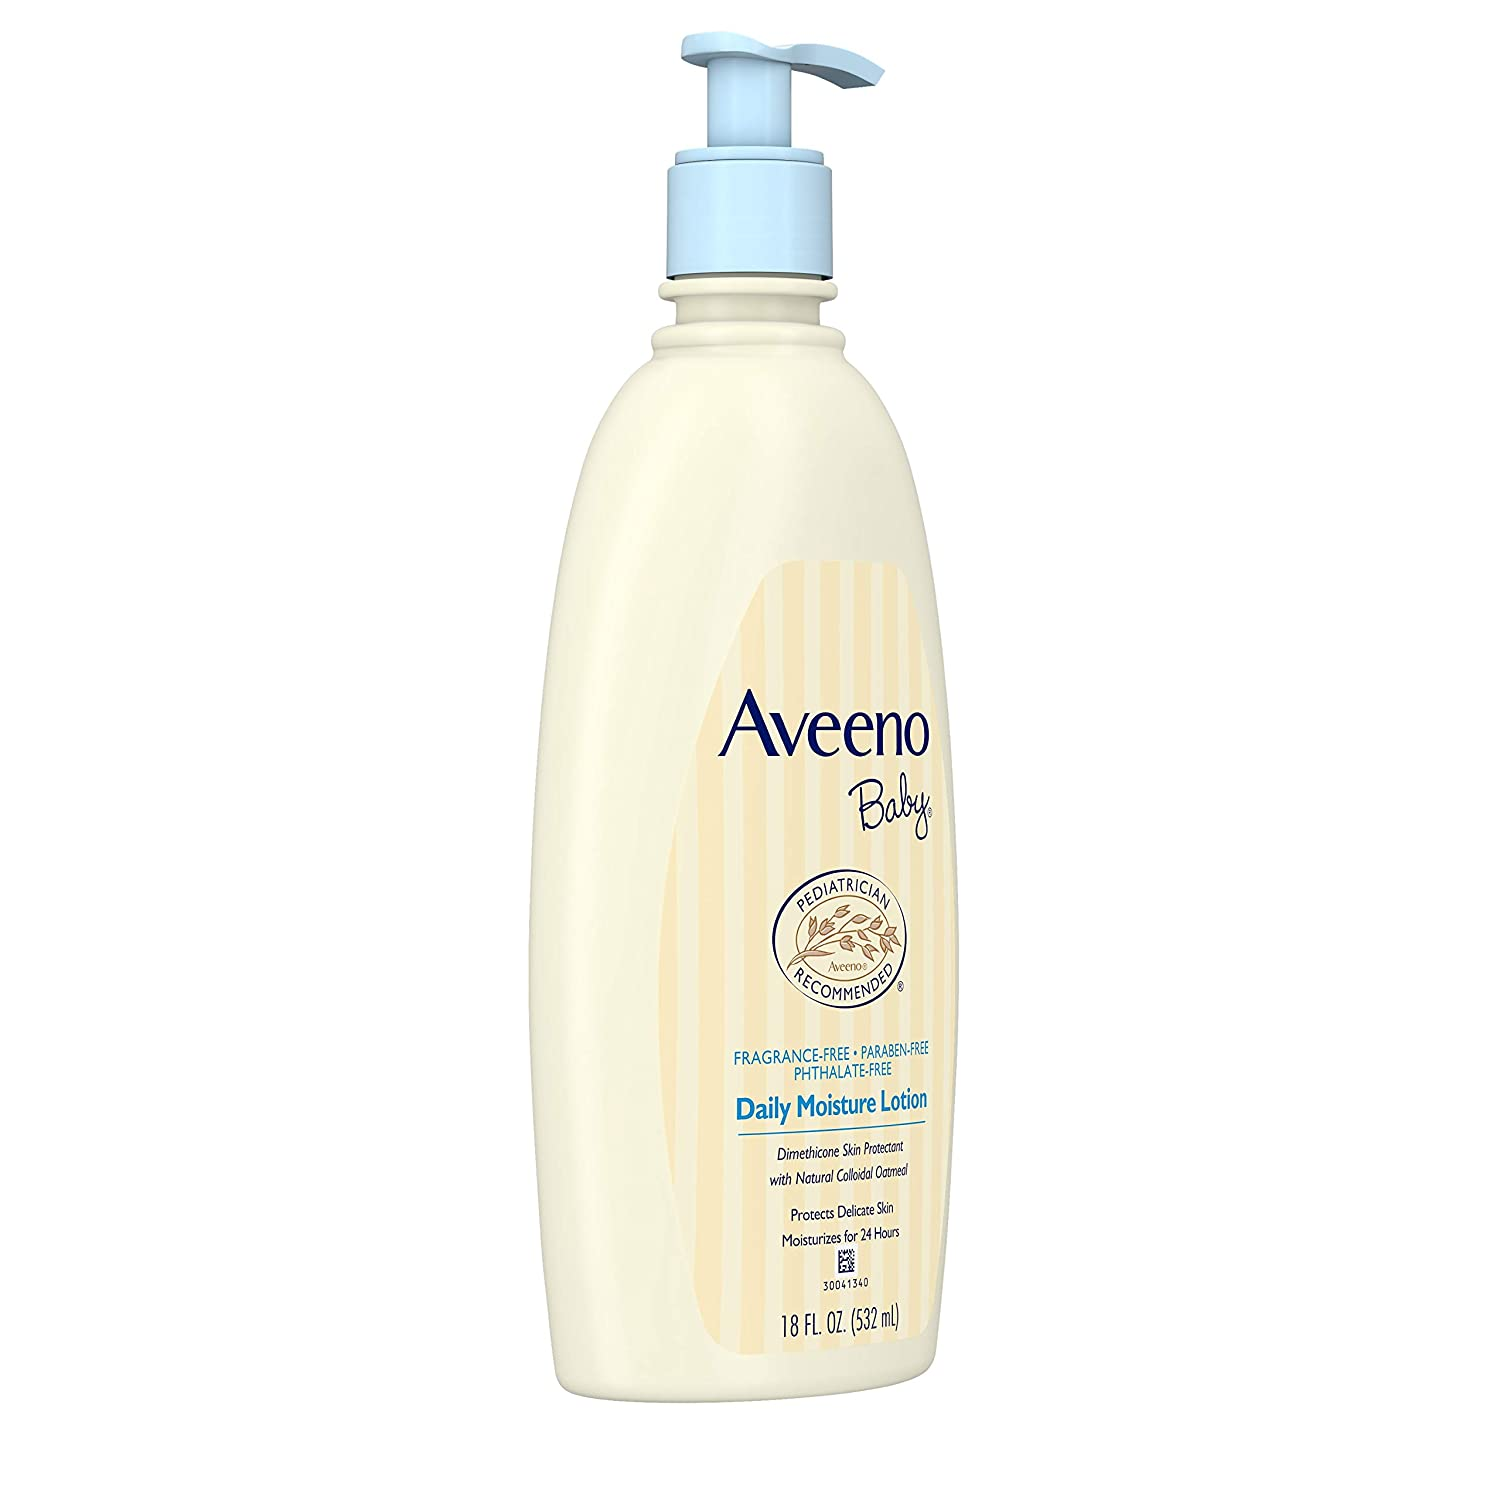 AVEENO Baby Daily Moisture Lotion Fragrance Free 18 oz (9 Pack)